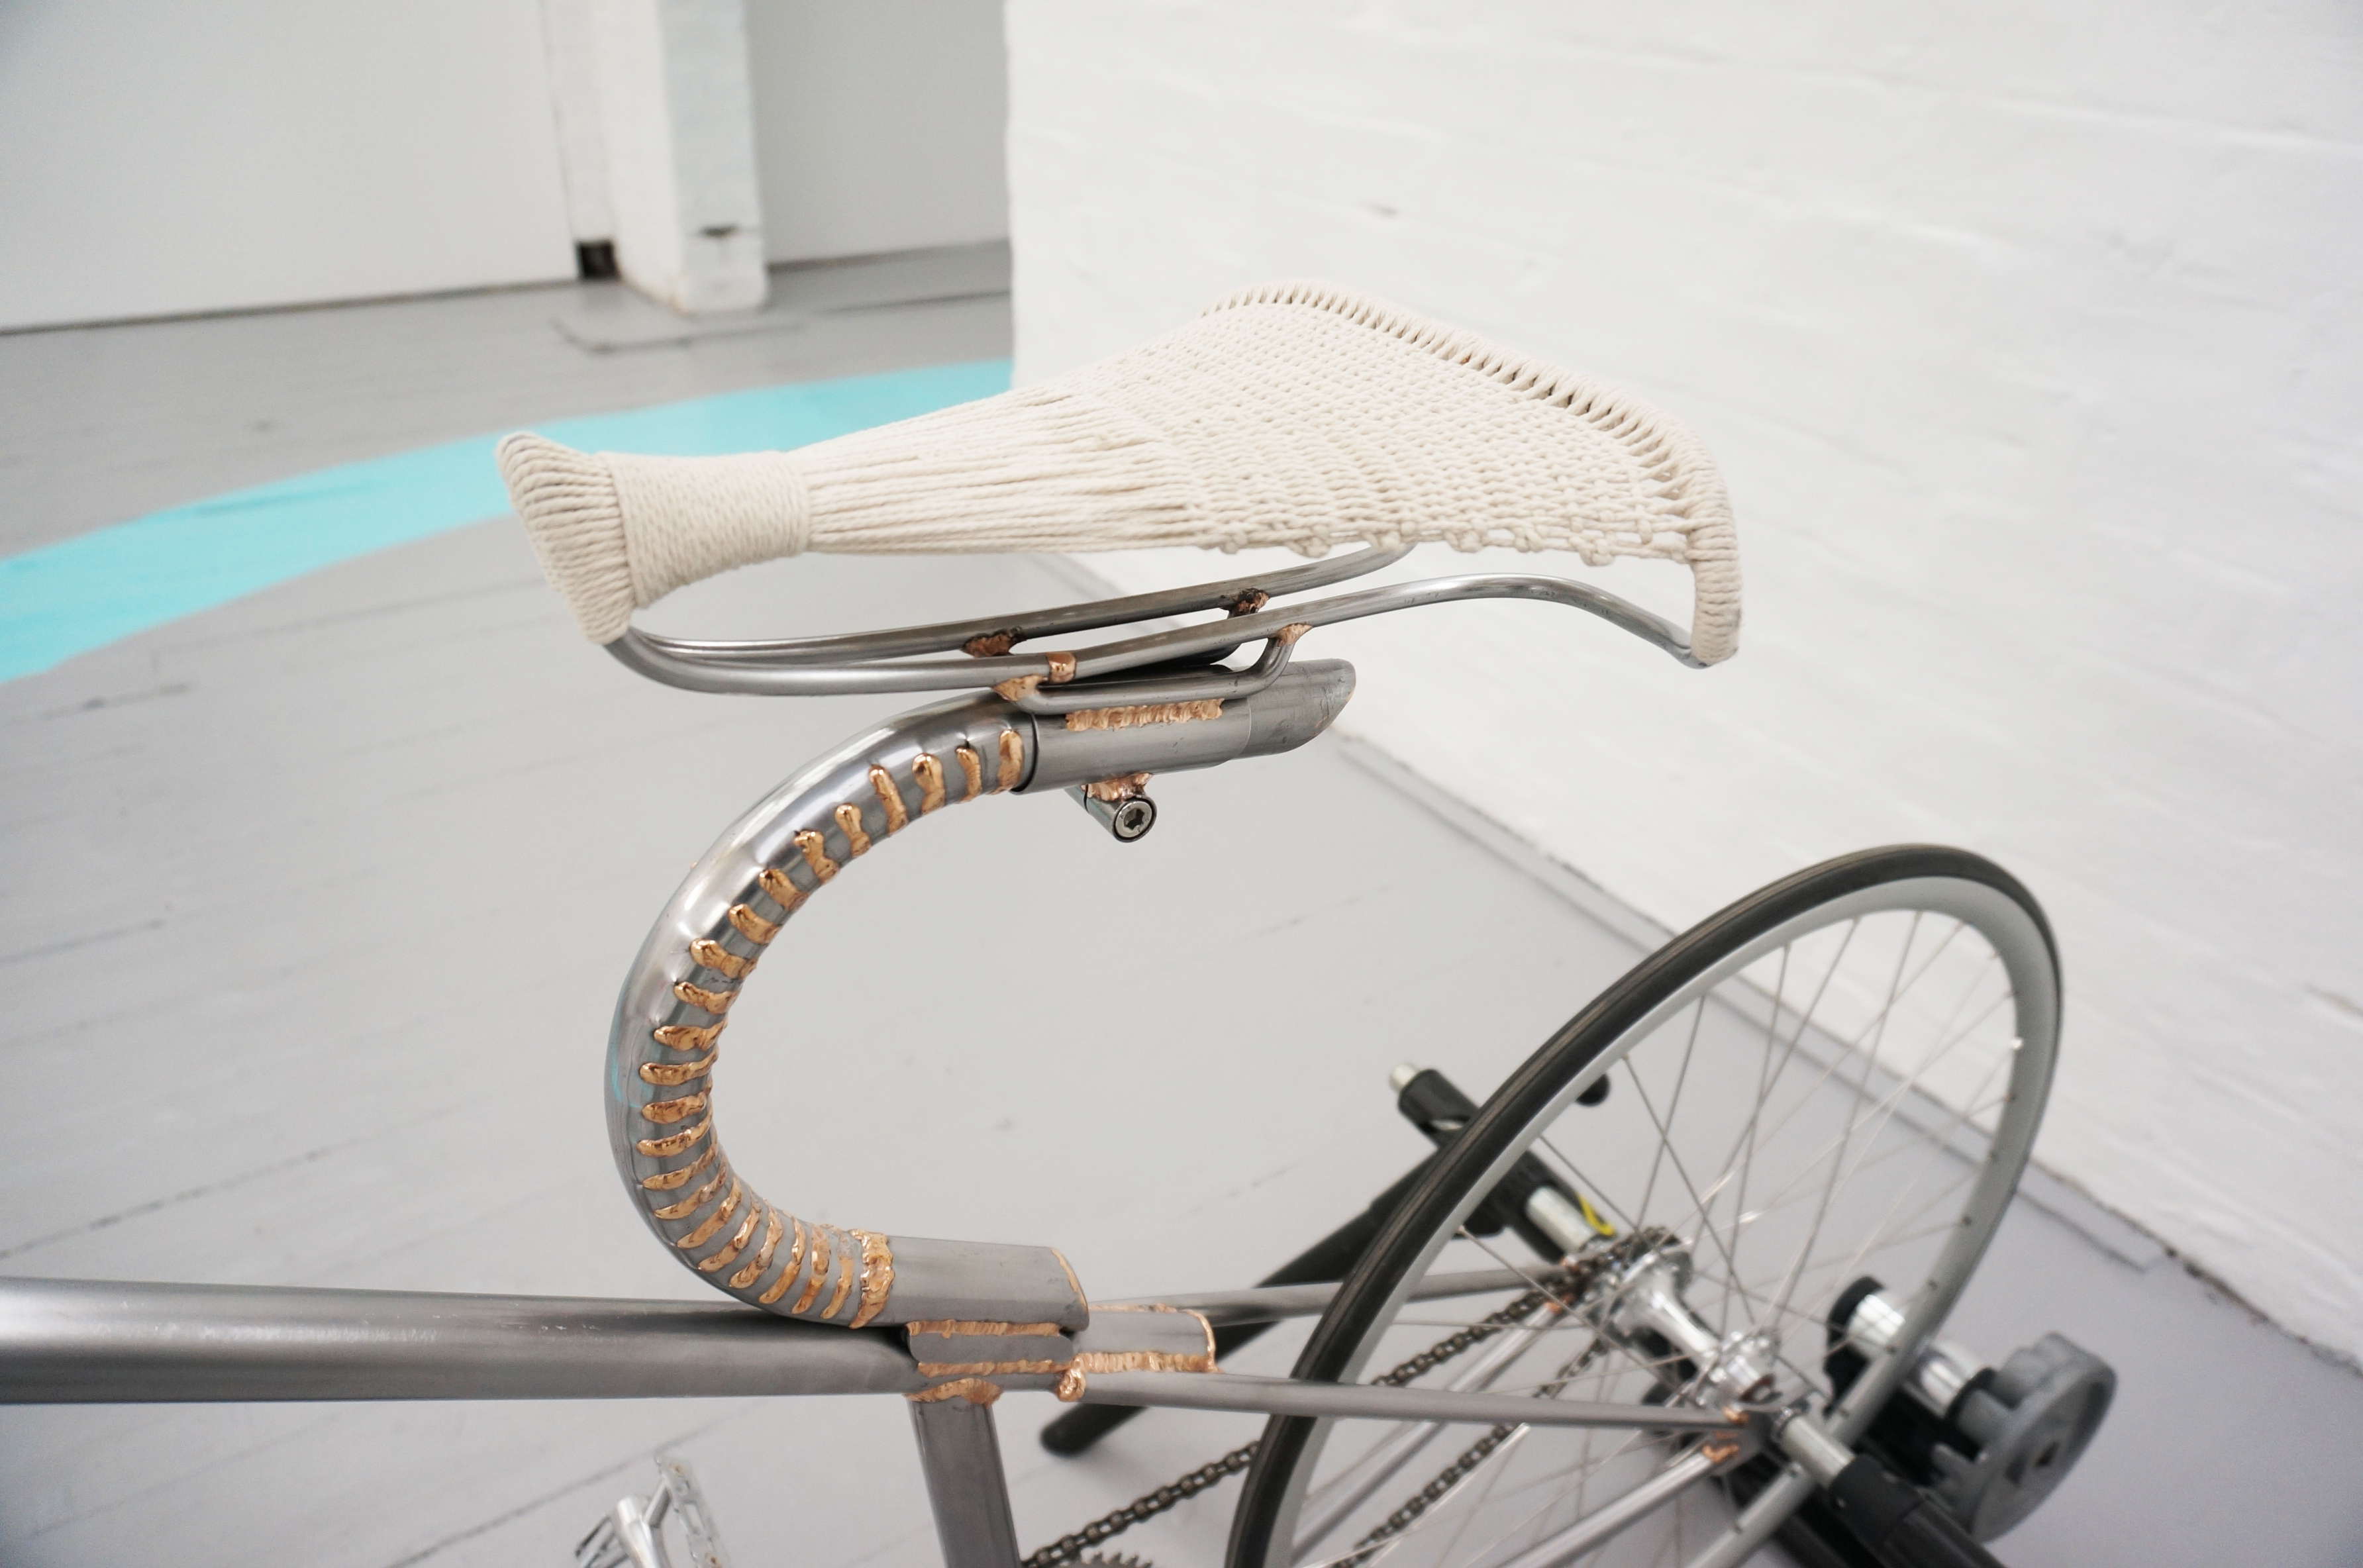 Giulia Lazzaro bicyclette detail 1